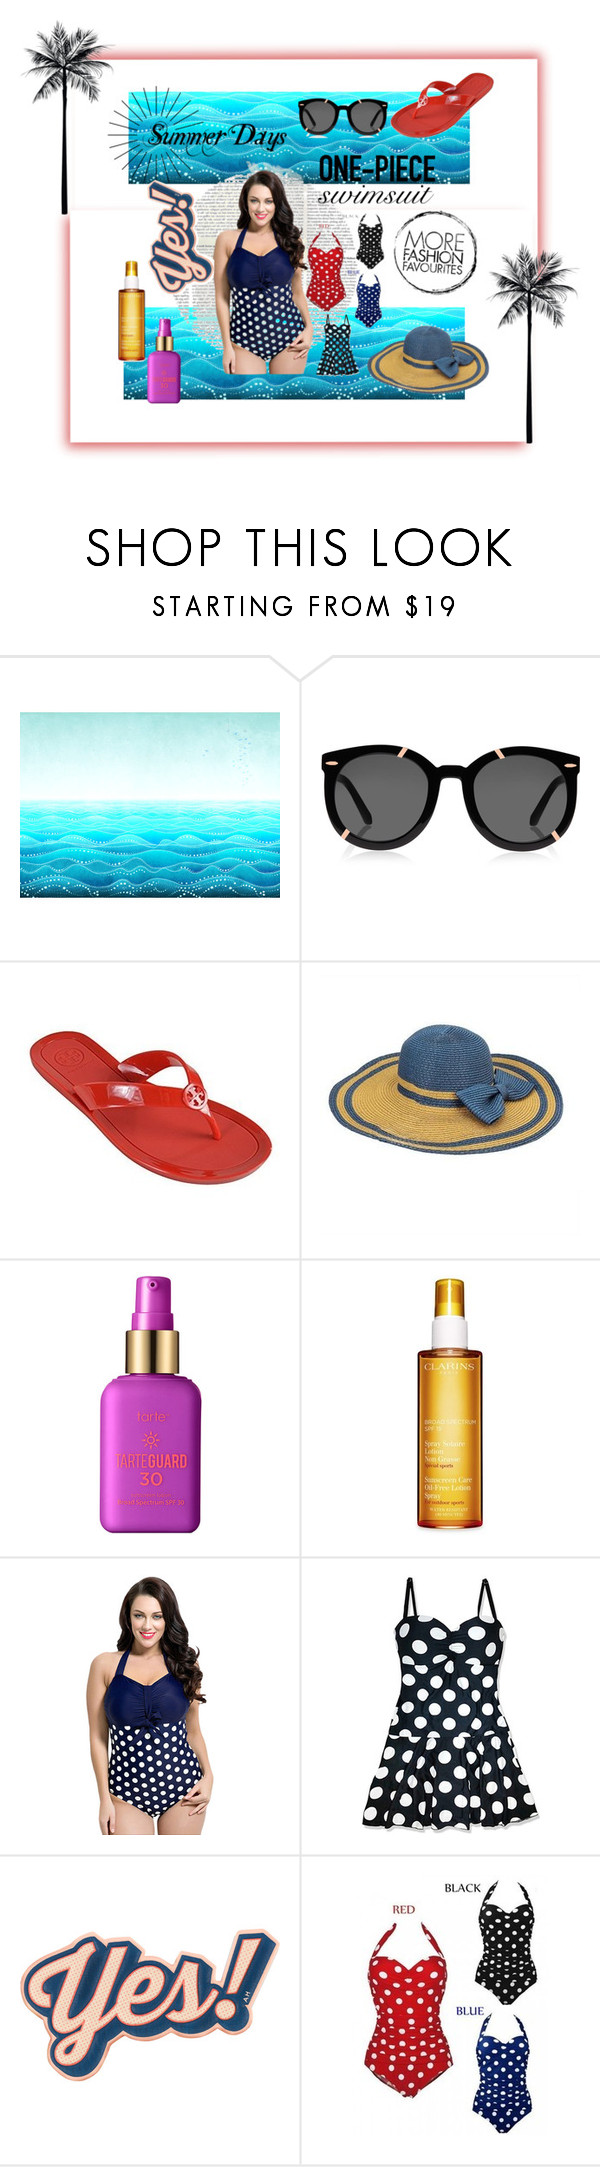 """""""Stylish Curves"""" by elahe-toutaiolepo ❤ liked on Polyvore featuring Karen Walker, Tory Burch, tarte, Clarins, Anya Hindmarch, stylishcurves and plussizeswimsuit"""